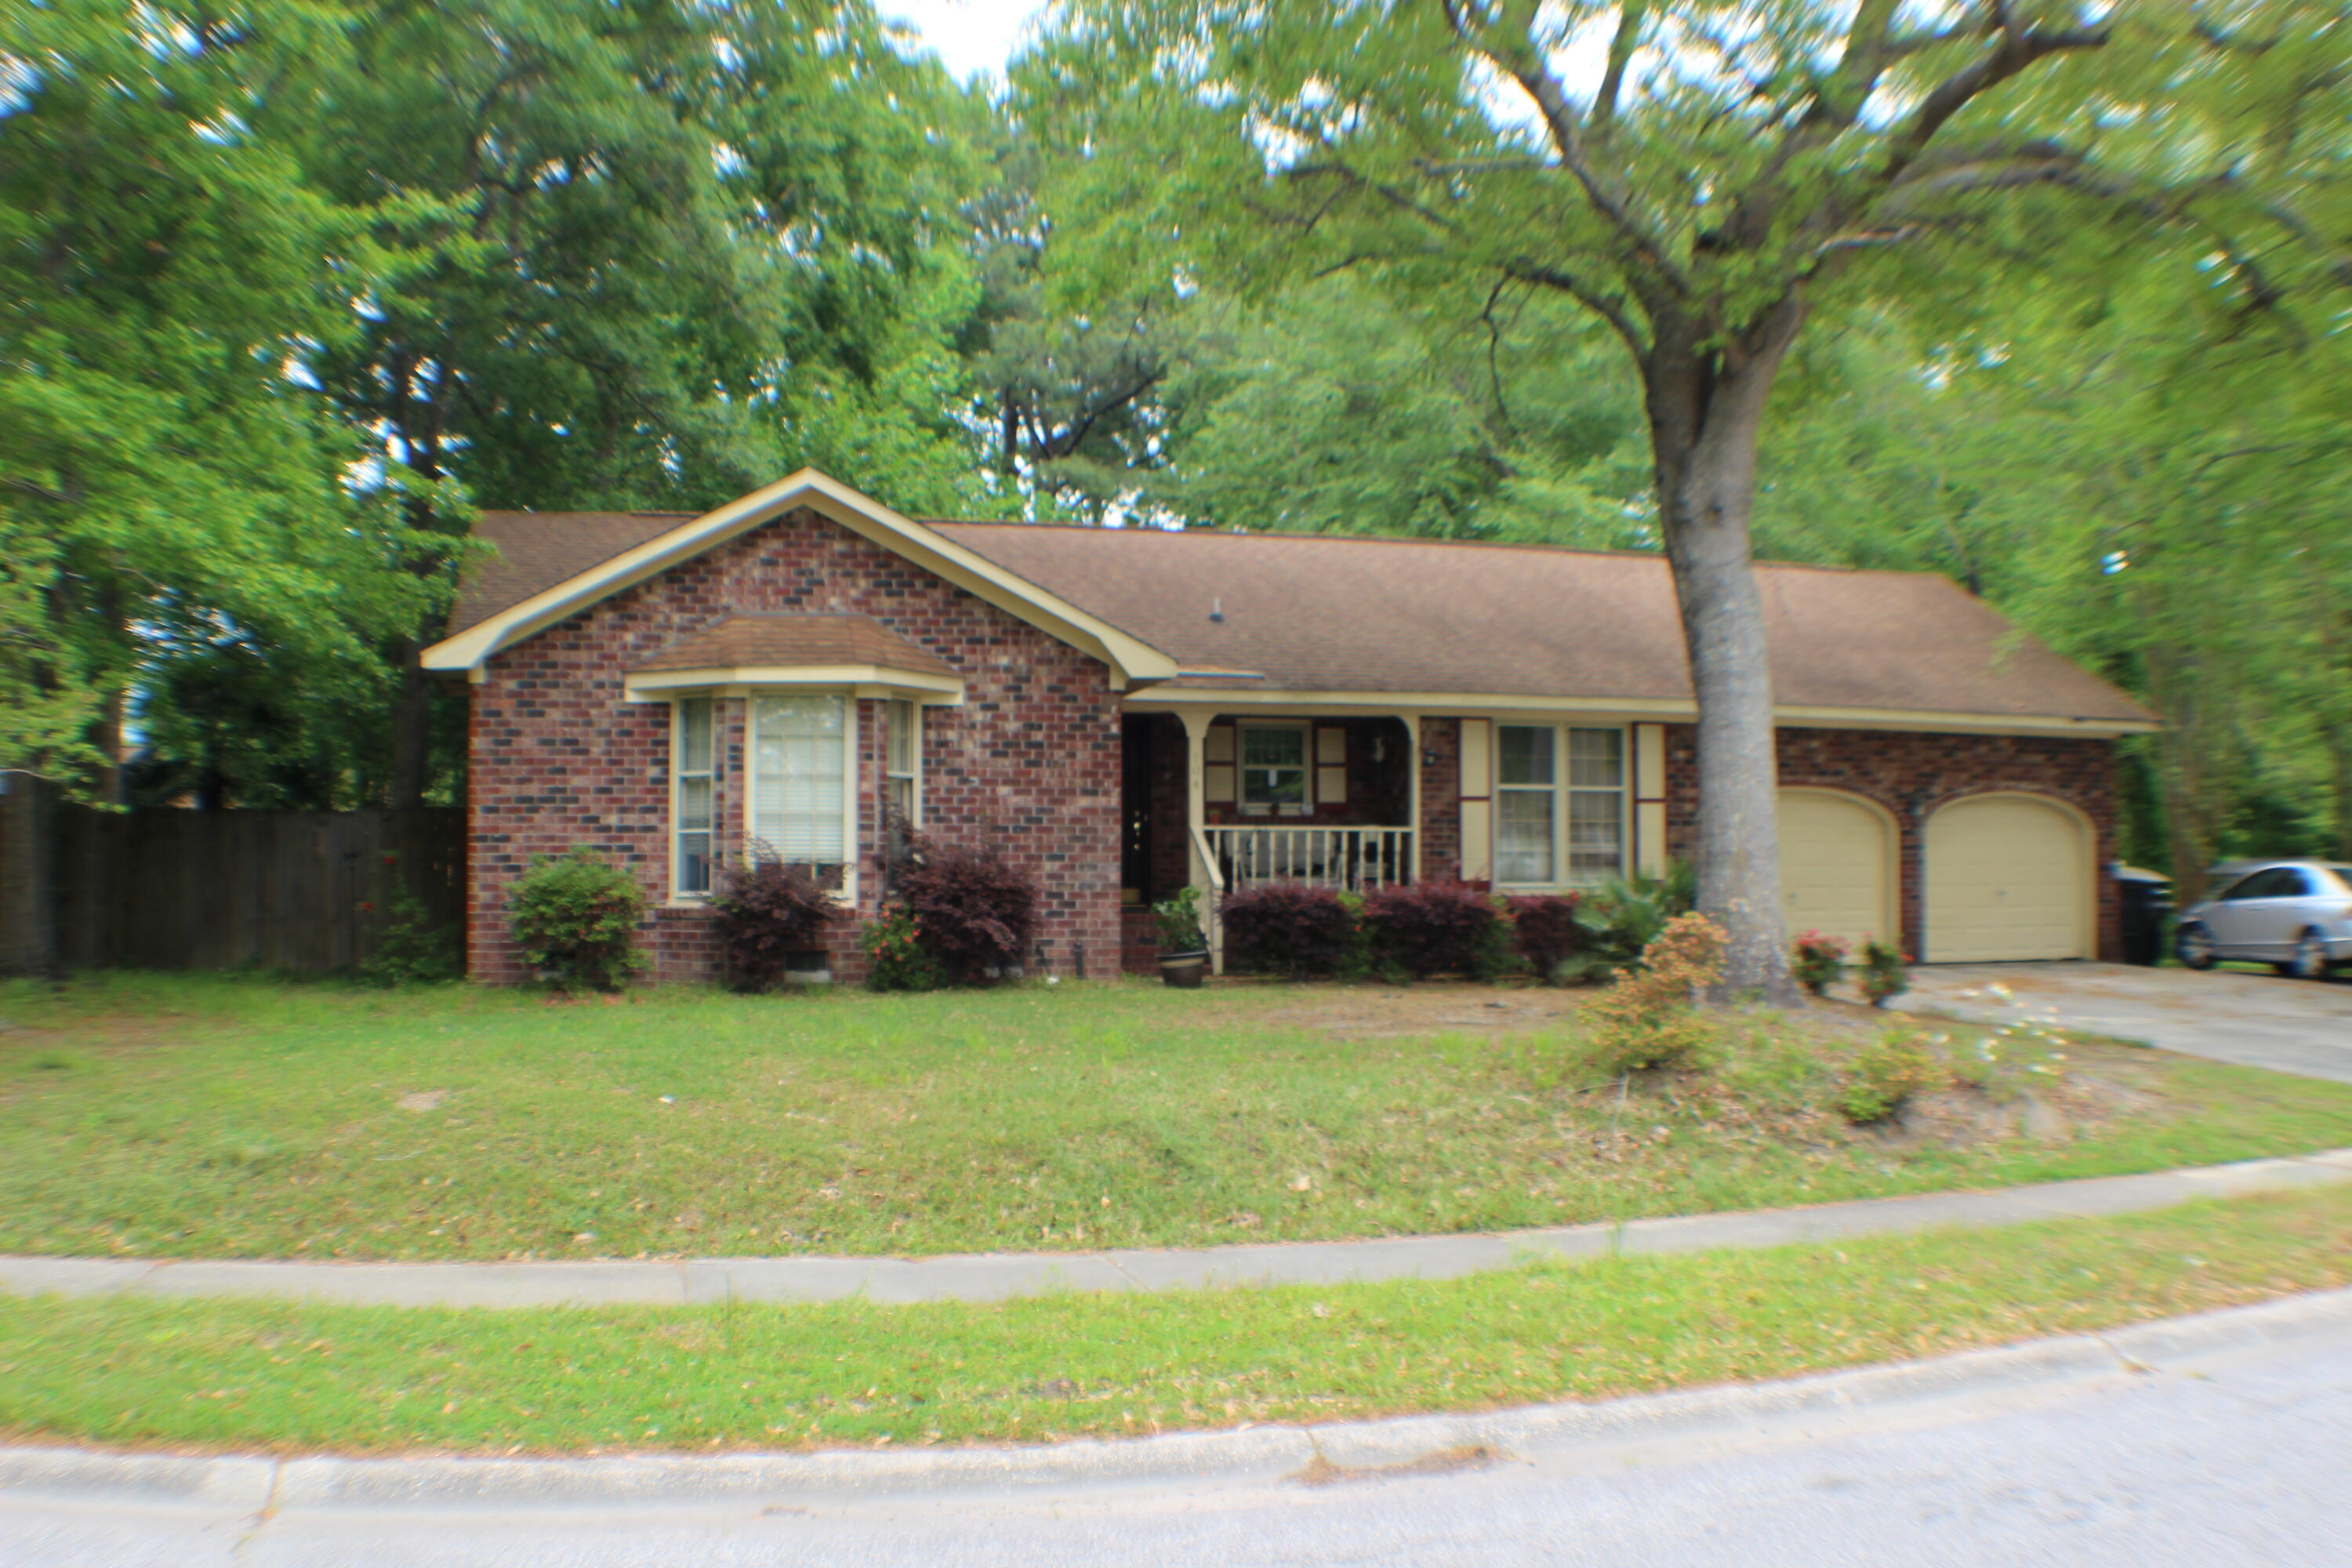 104 Savannah Round Summerville, Sc 29485